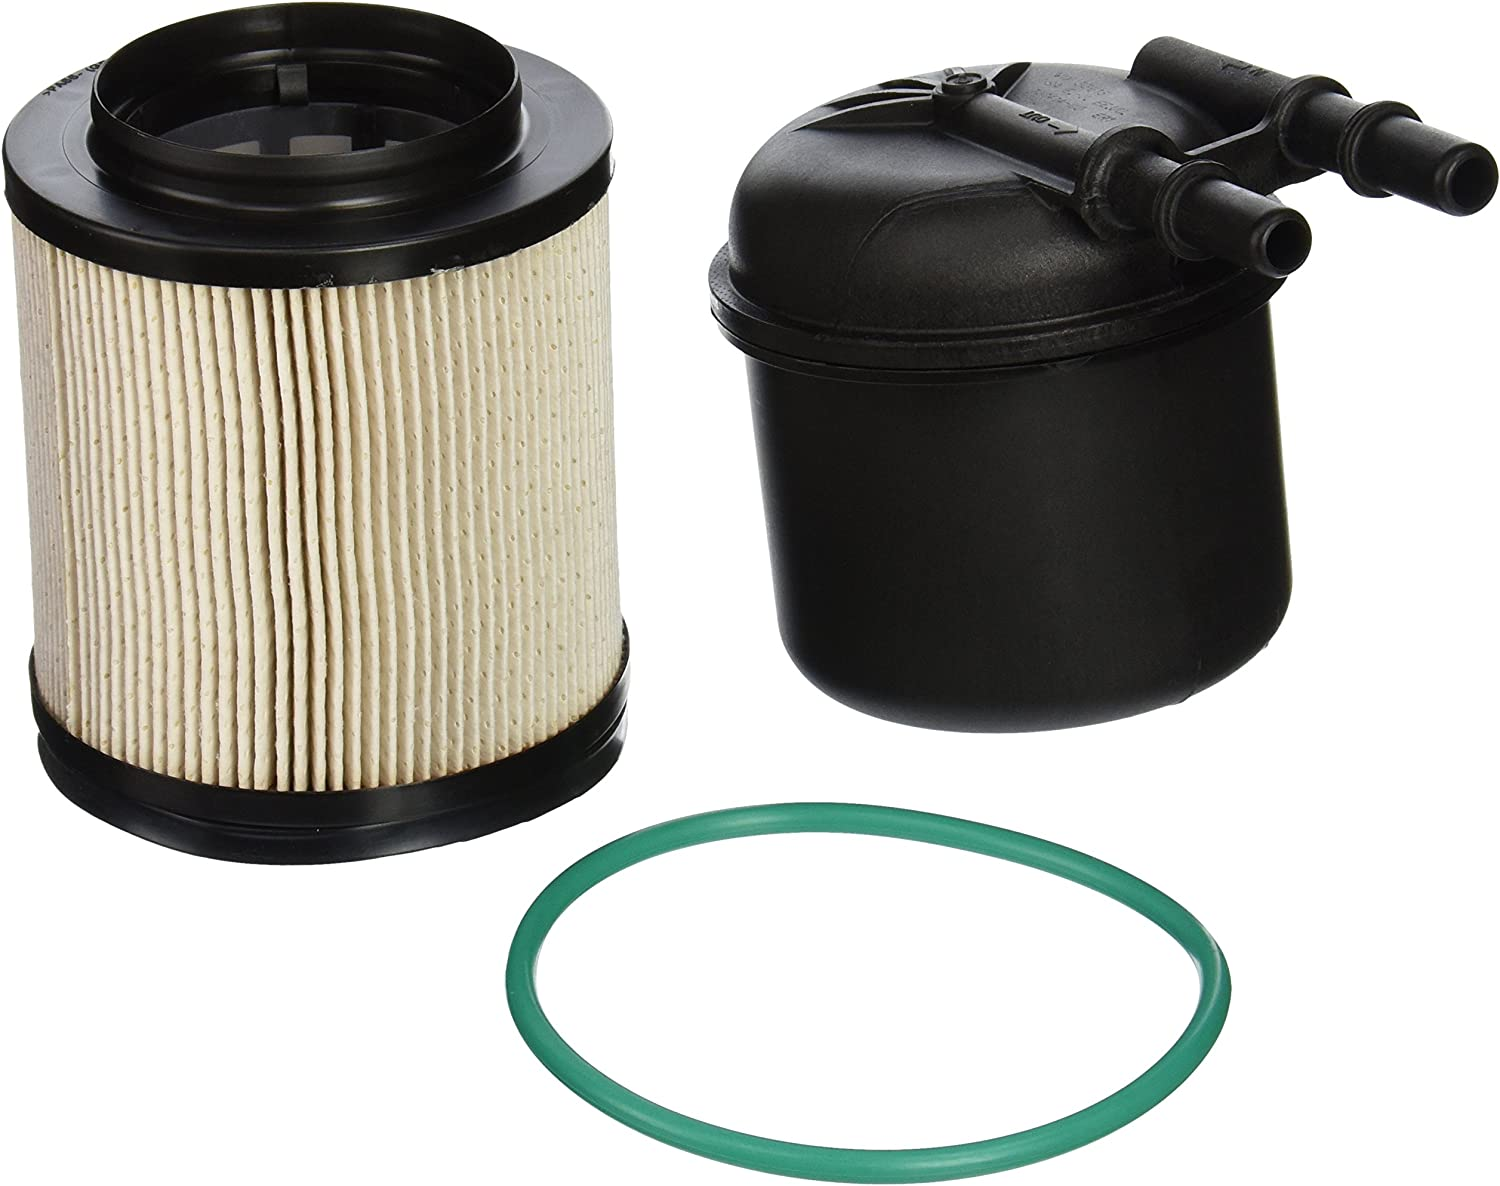 Wix / Wix XP Fuel Filter